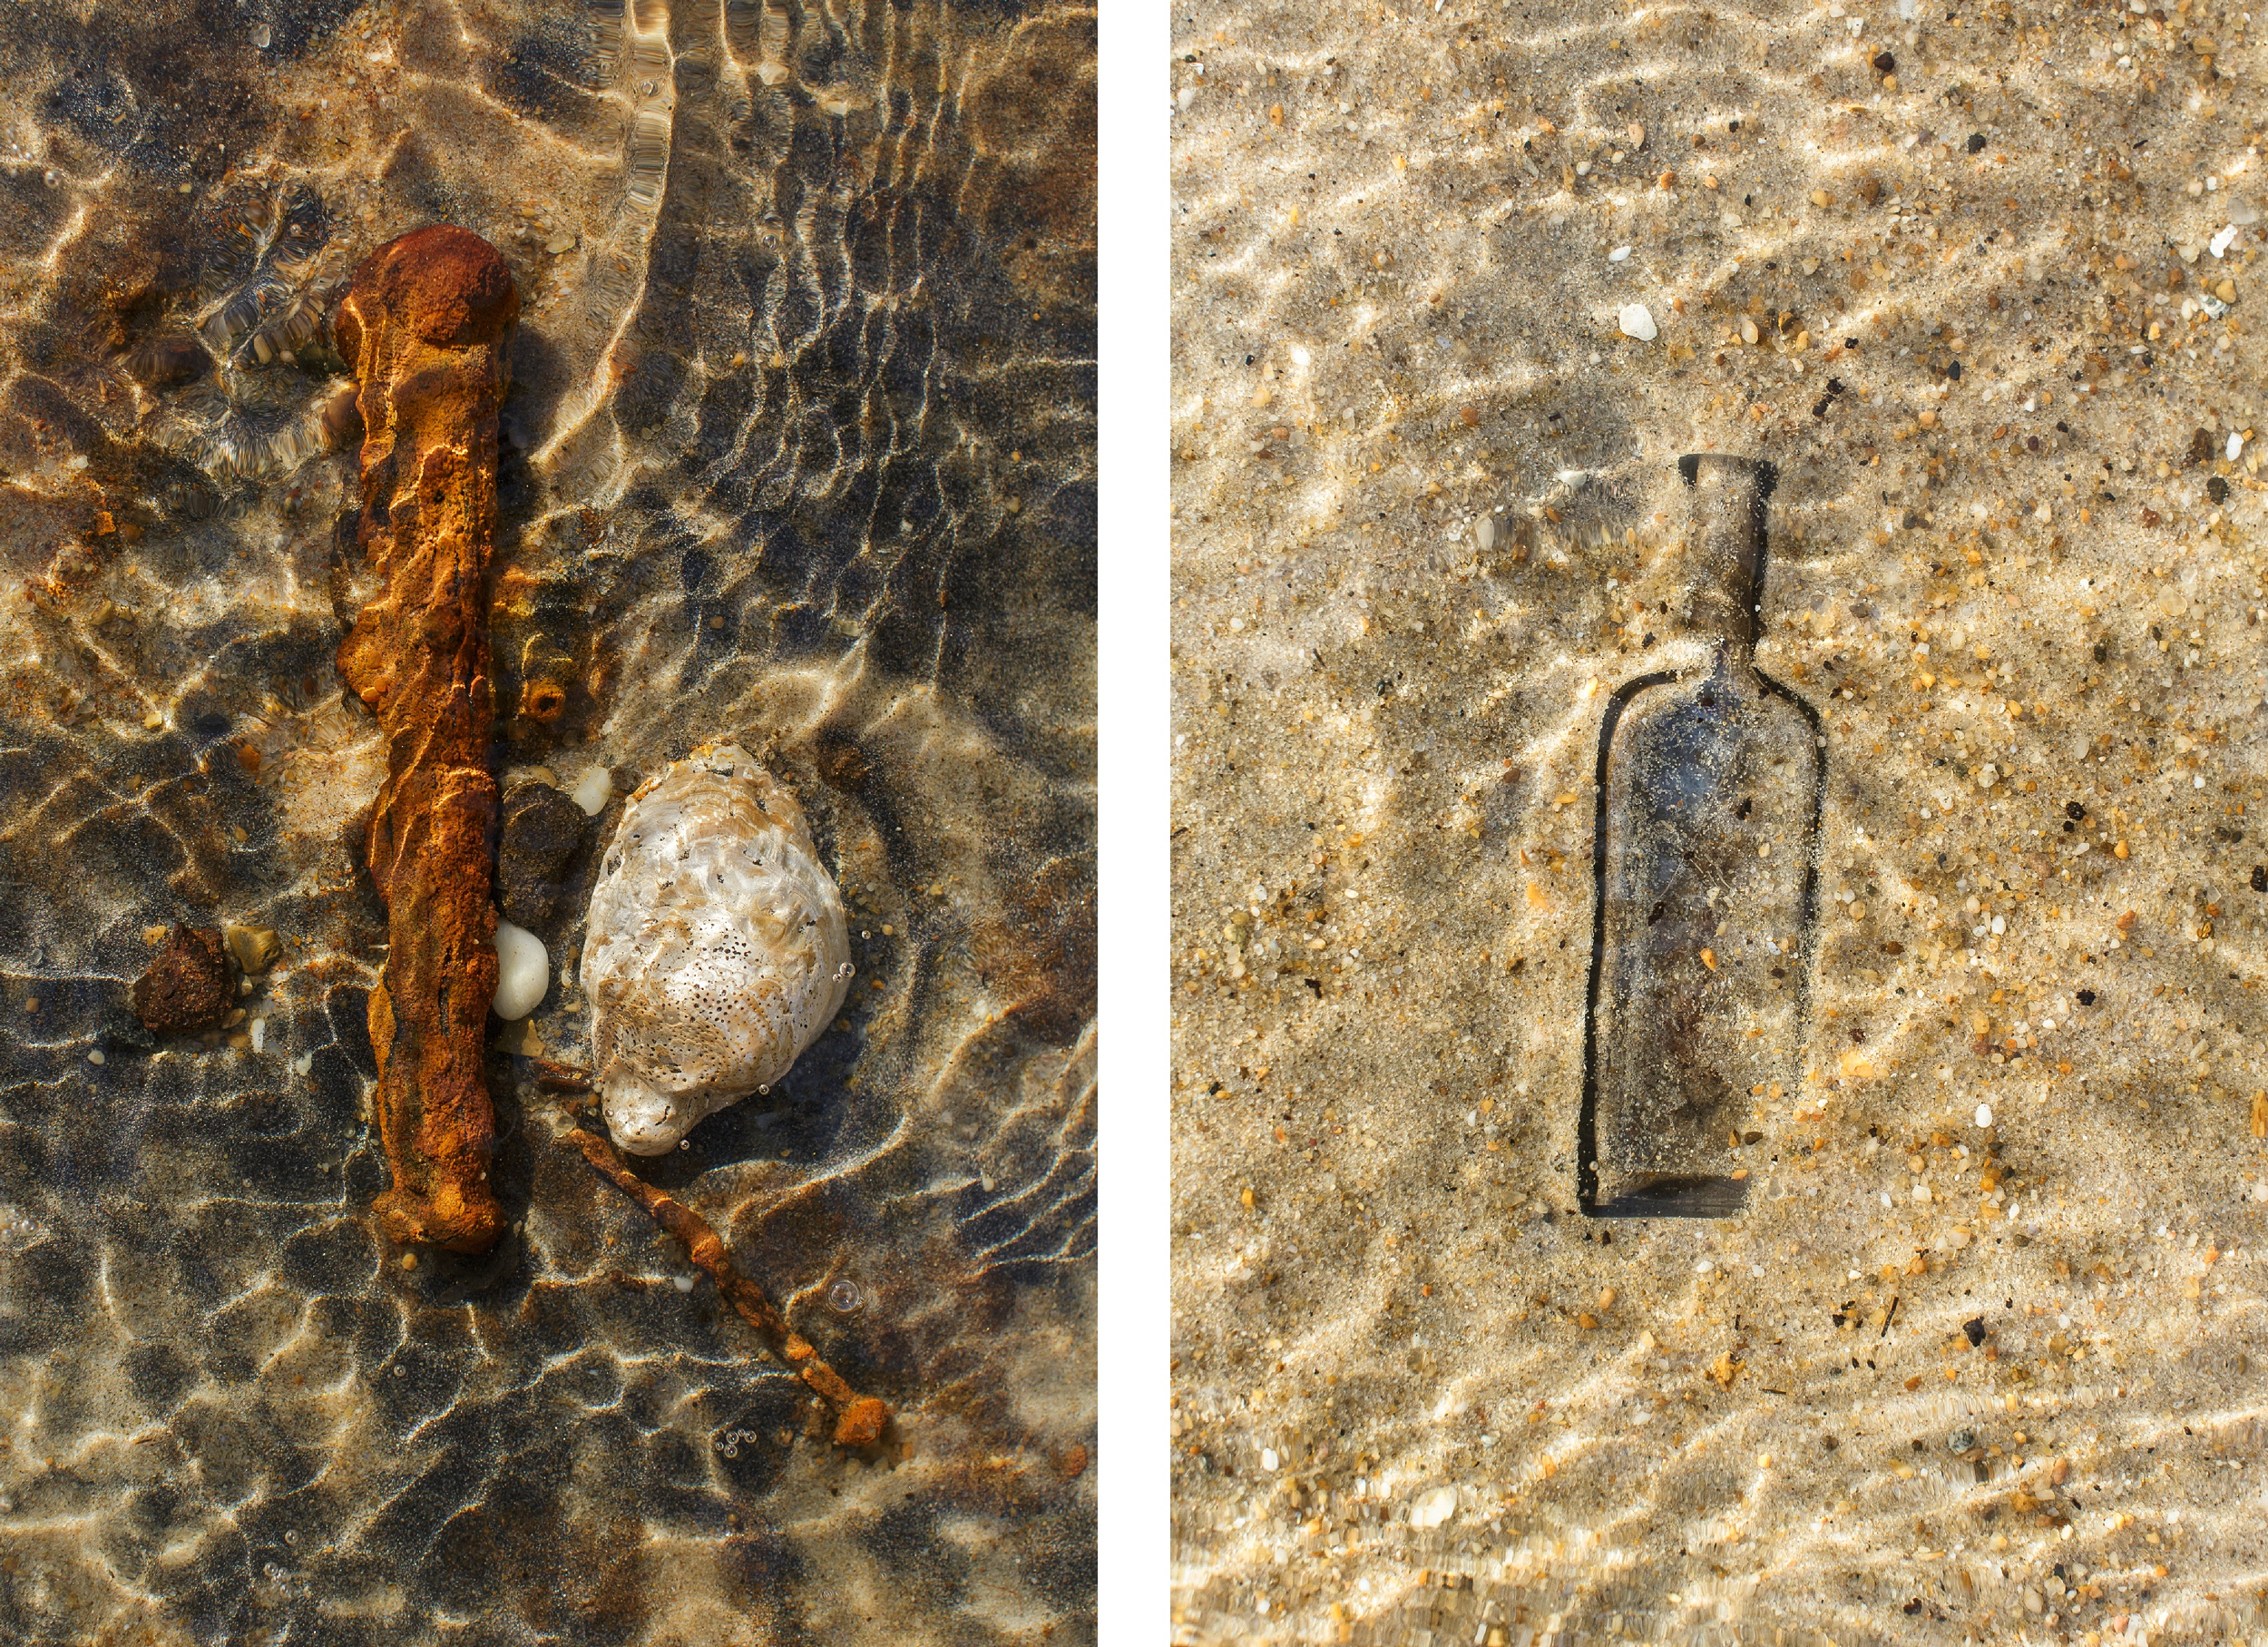 Uncovered by waves, nails from shipwrecks and an old McCormick Spice bottle from the 1800's in the sun-rippled shallows by the cemetery.